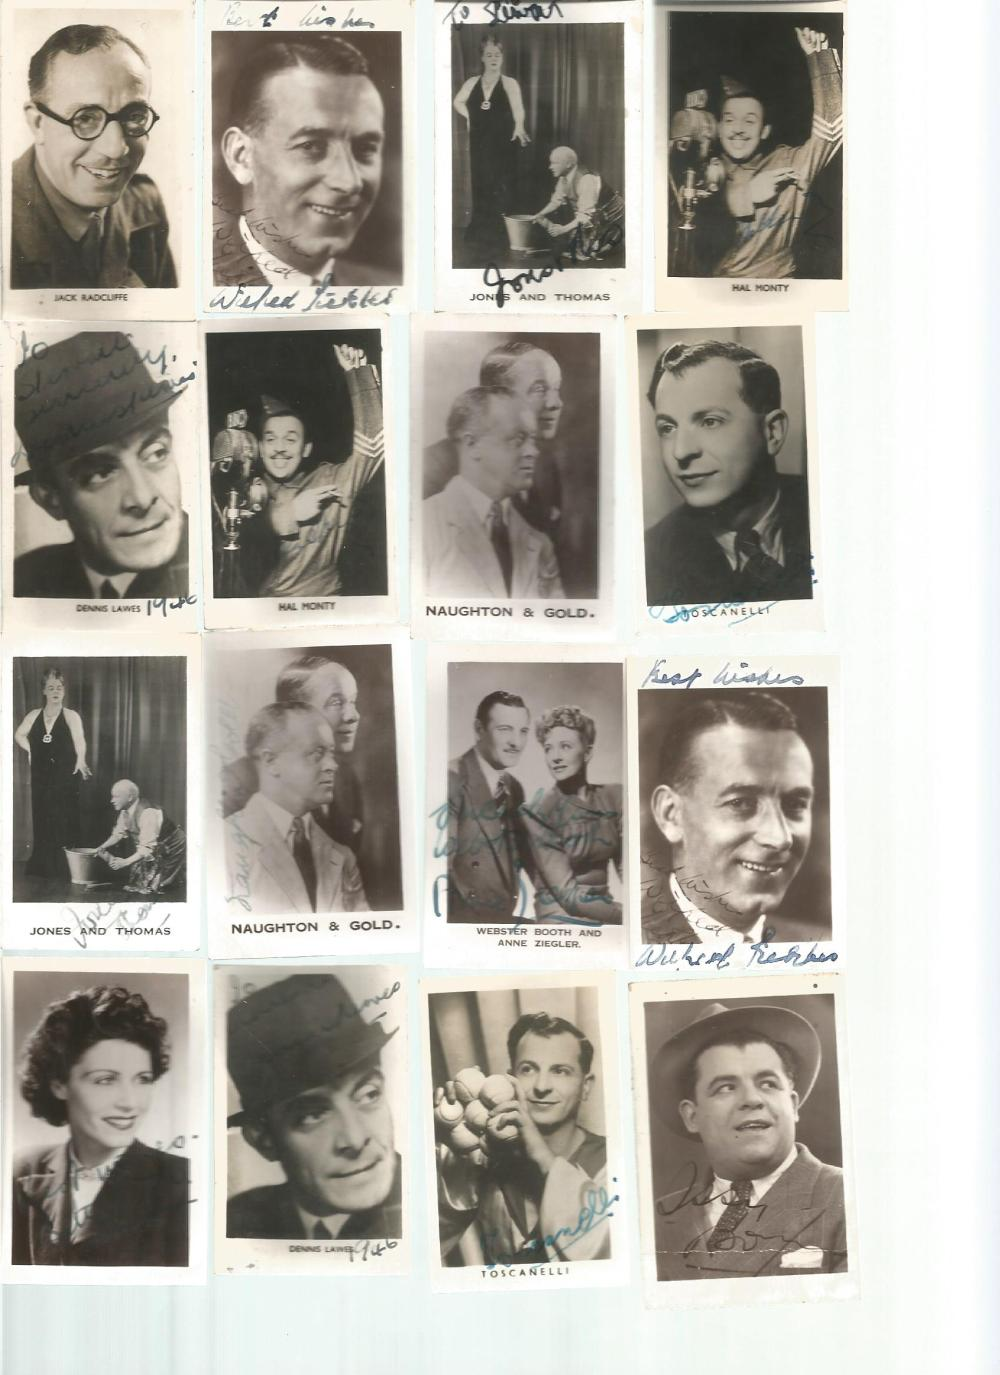 vintage signed photo collection. 18 2x1 photos. Some of names included are Don Alvin, Webster